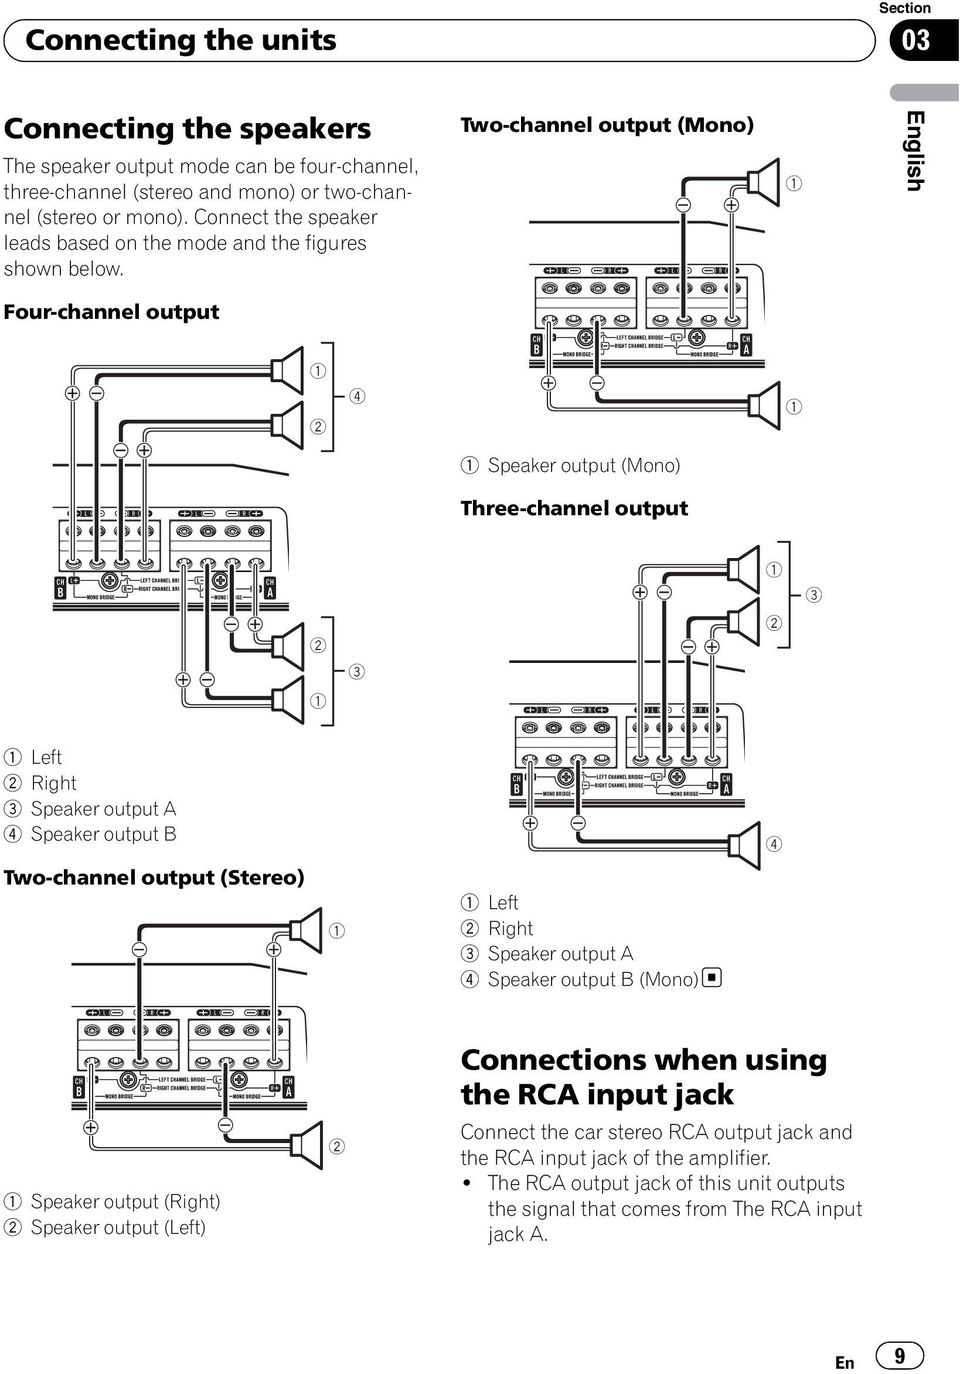 Two-channel output (Mono) English Four-channel output 4 Speaker output (Mono) Three-channel output Left Right Speaker output A 4 Speaker output B 4 Two-channel output (Stereo) Left